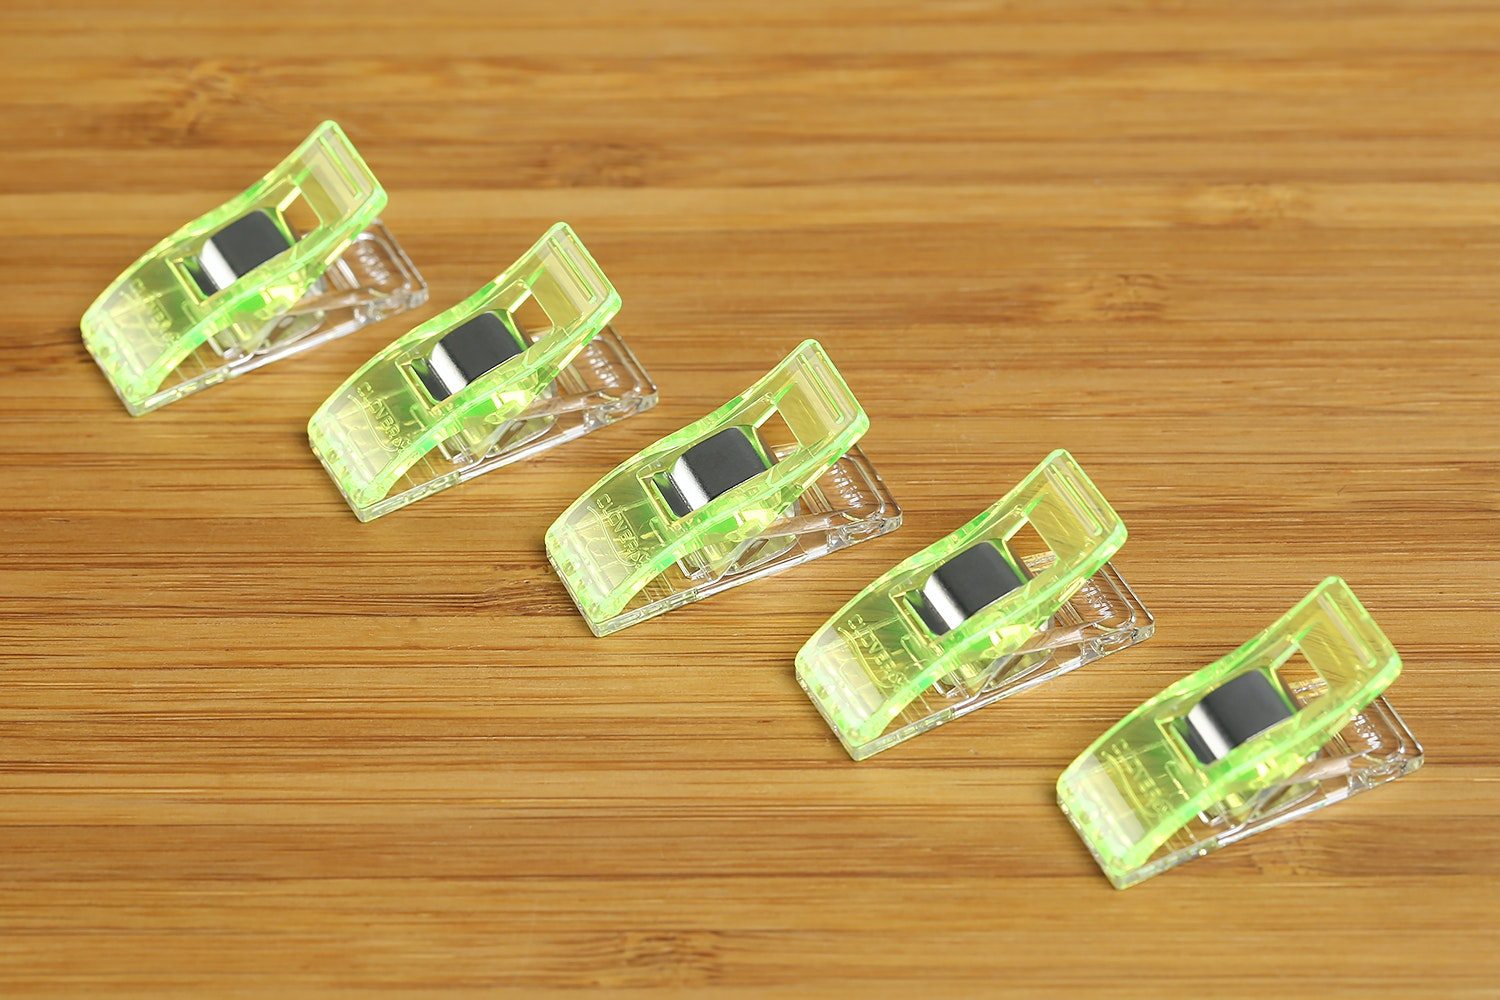 Neon Green Wonder Clips (50-Pack)